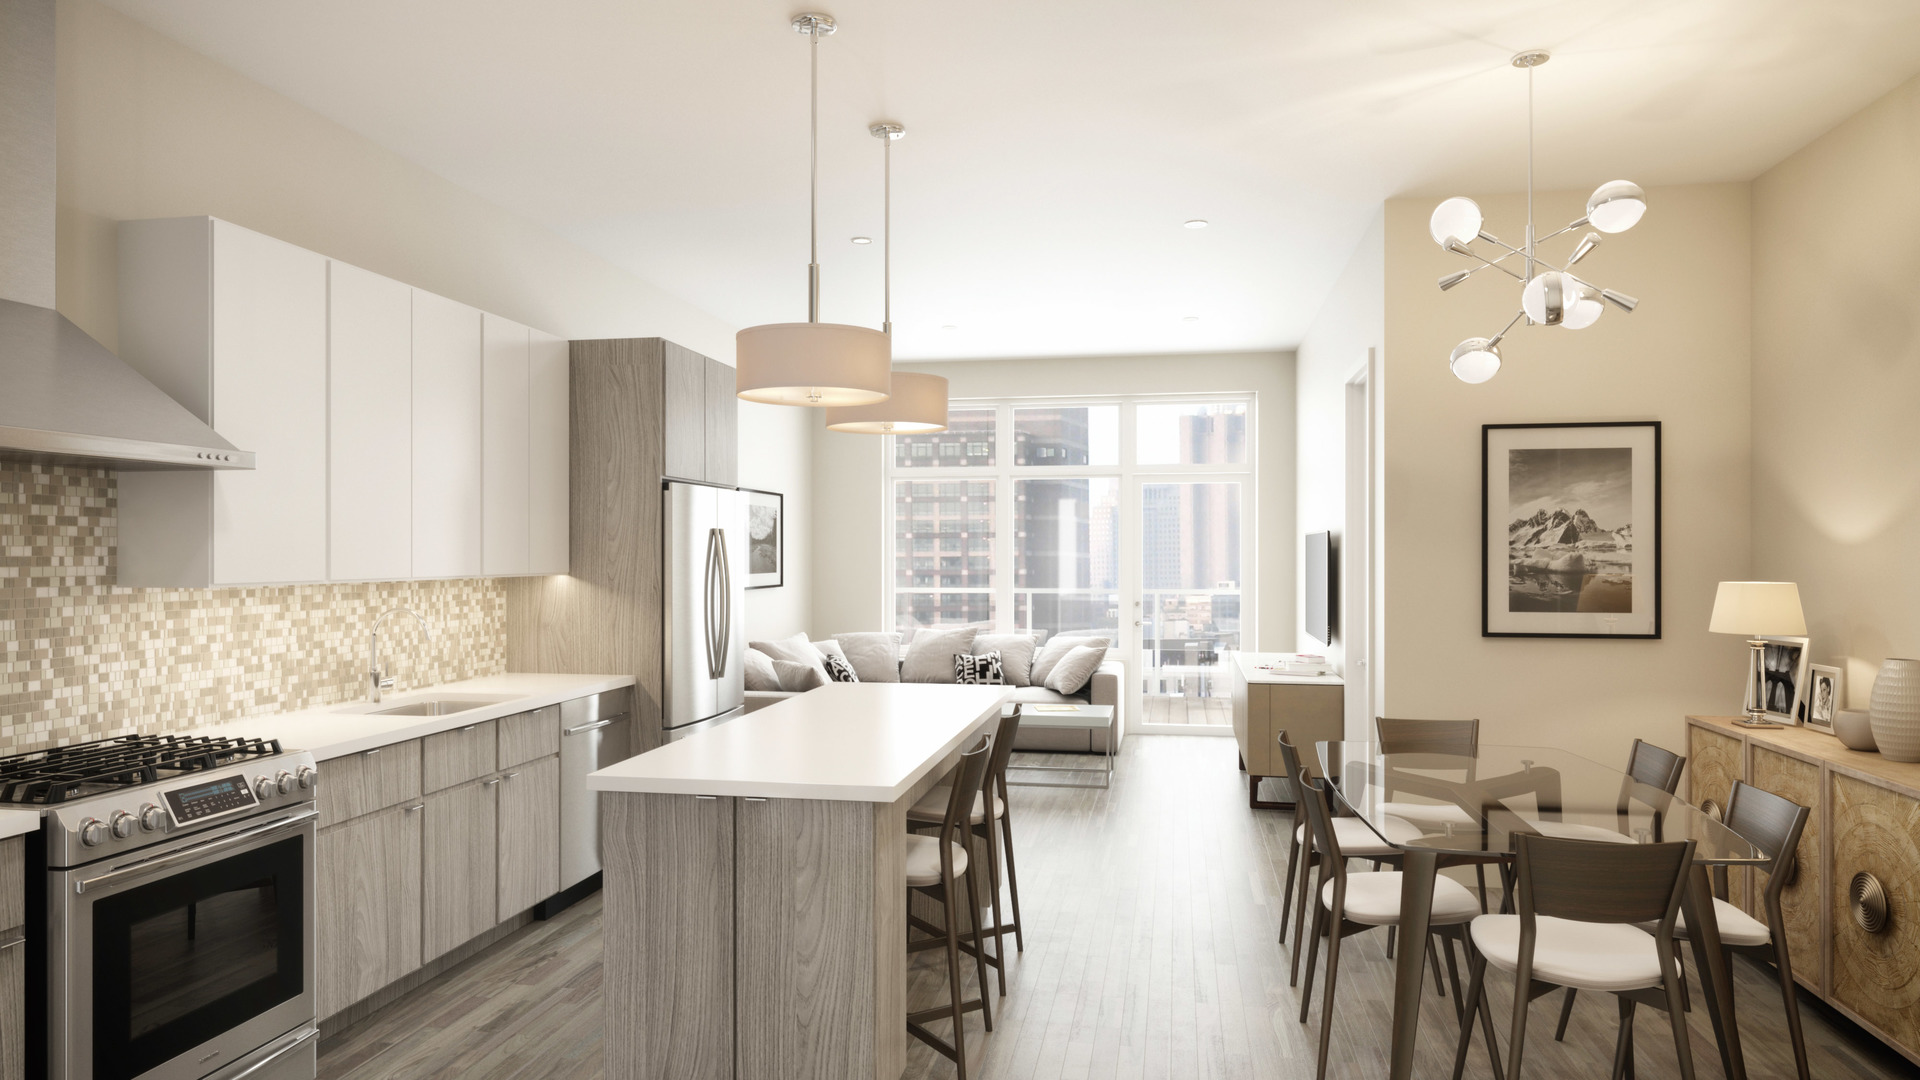 1802 South state 109, CHICAGO, Illinois, 60616